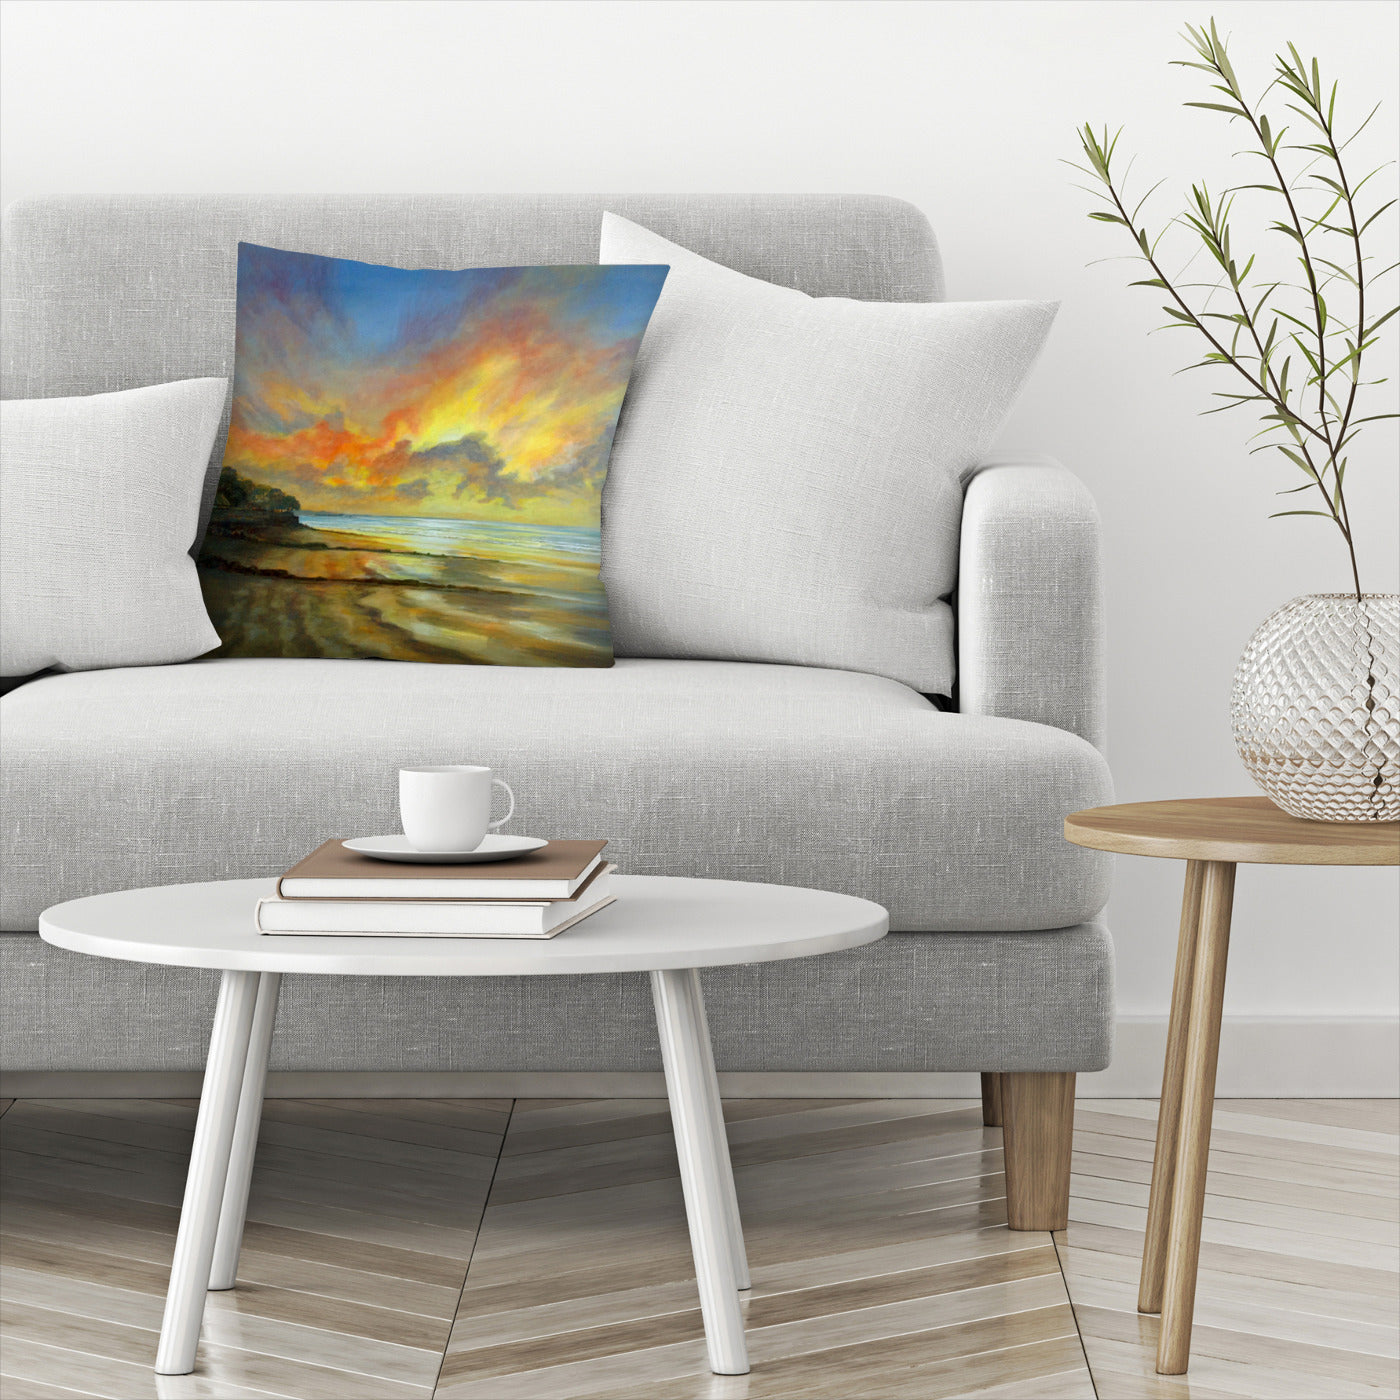 Sunset by Sandra Francis Decorative Pillow - Decorative Pillow - Americanflat